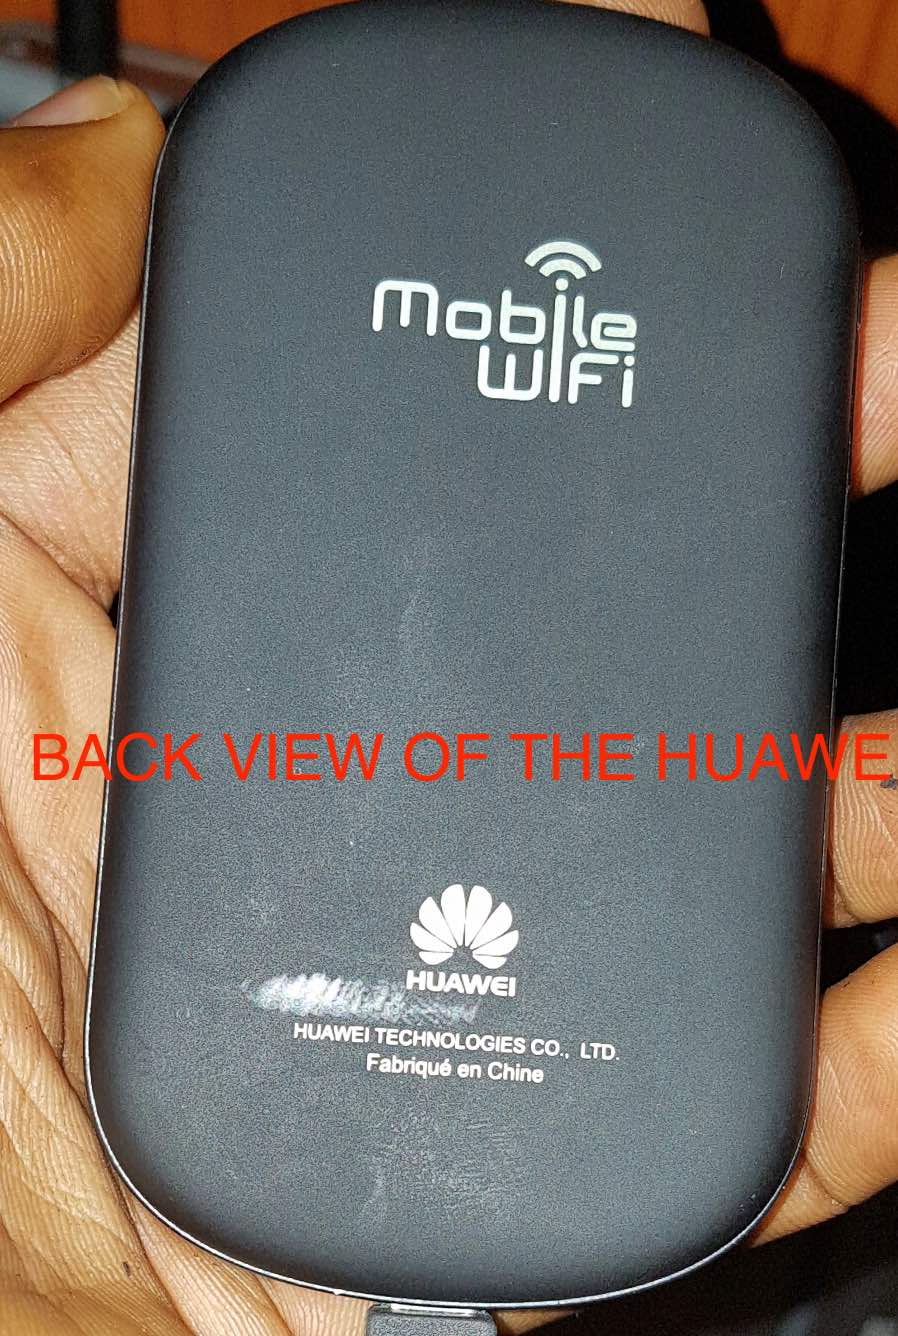 Use Wi-FI Hotspot Instead of Data Network for the Health of your Device